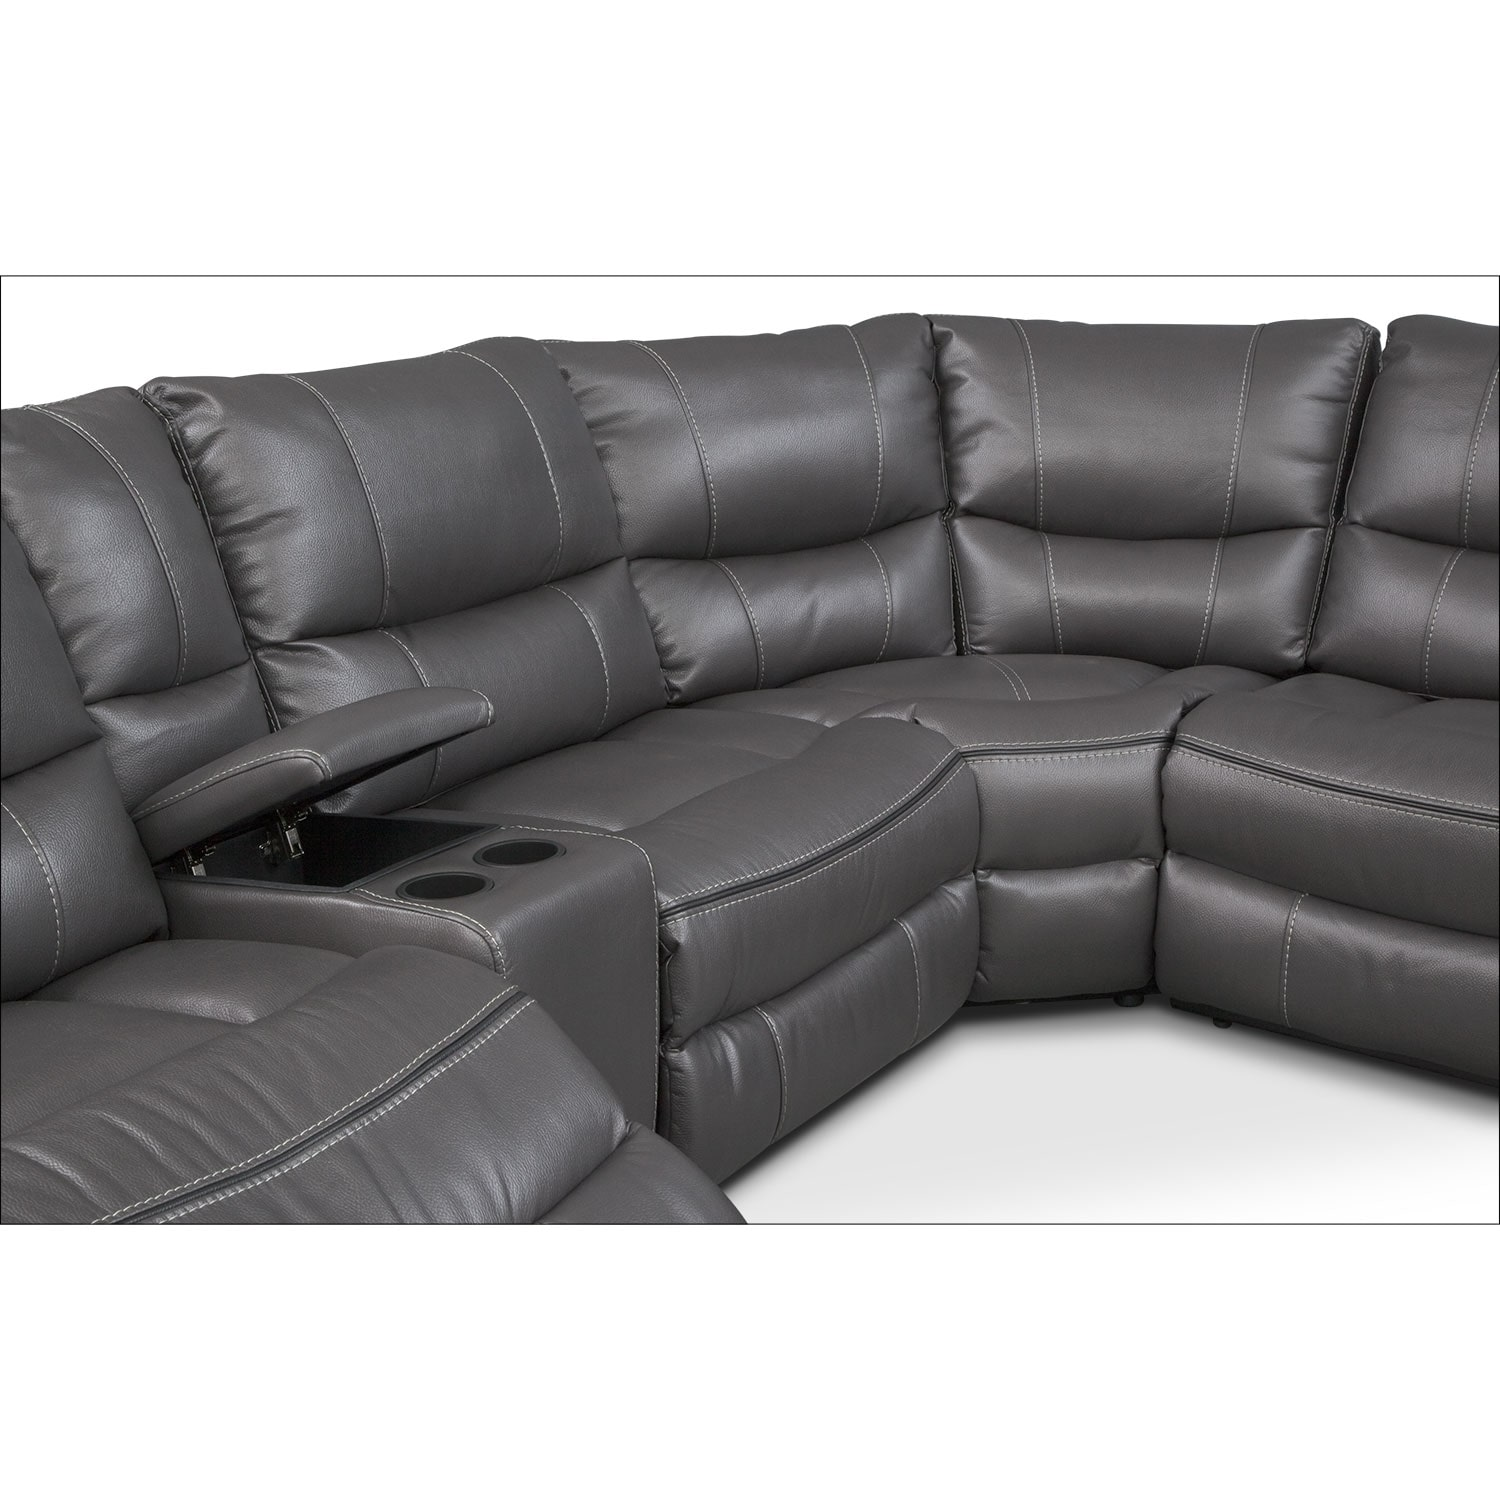 Orlando Sectional Sofa – Keep Spring Sofa